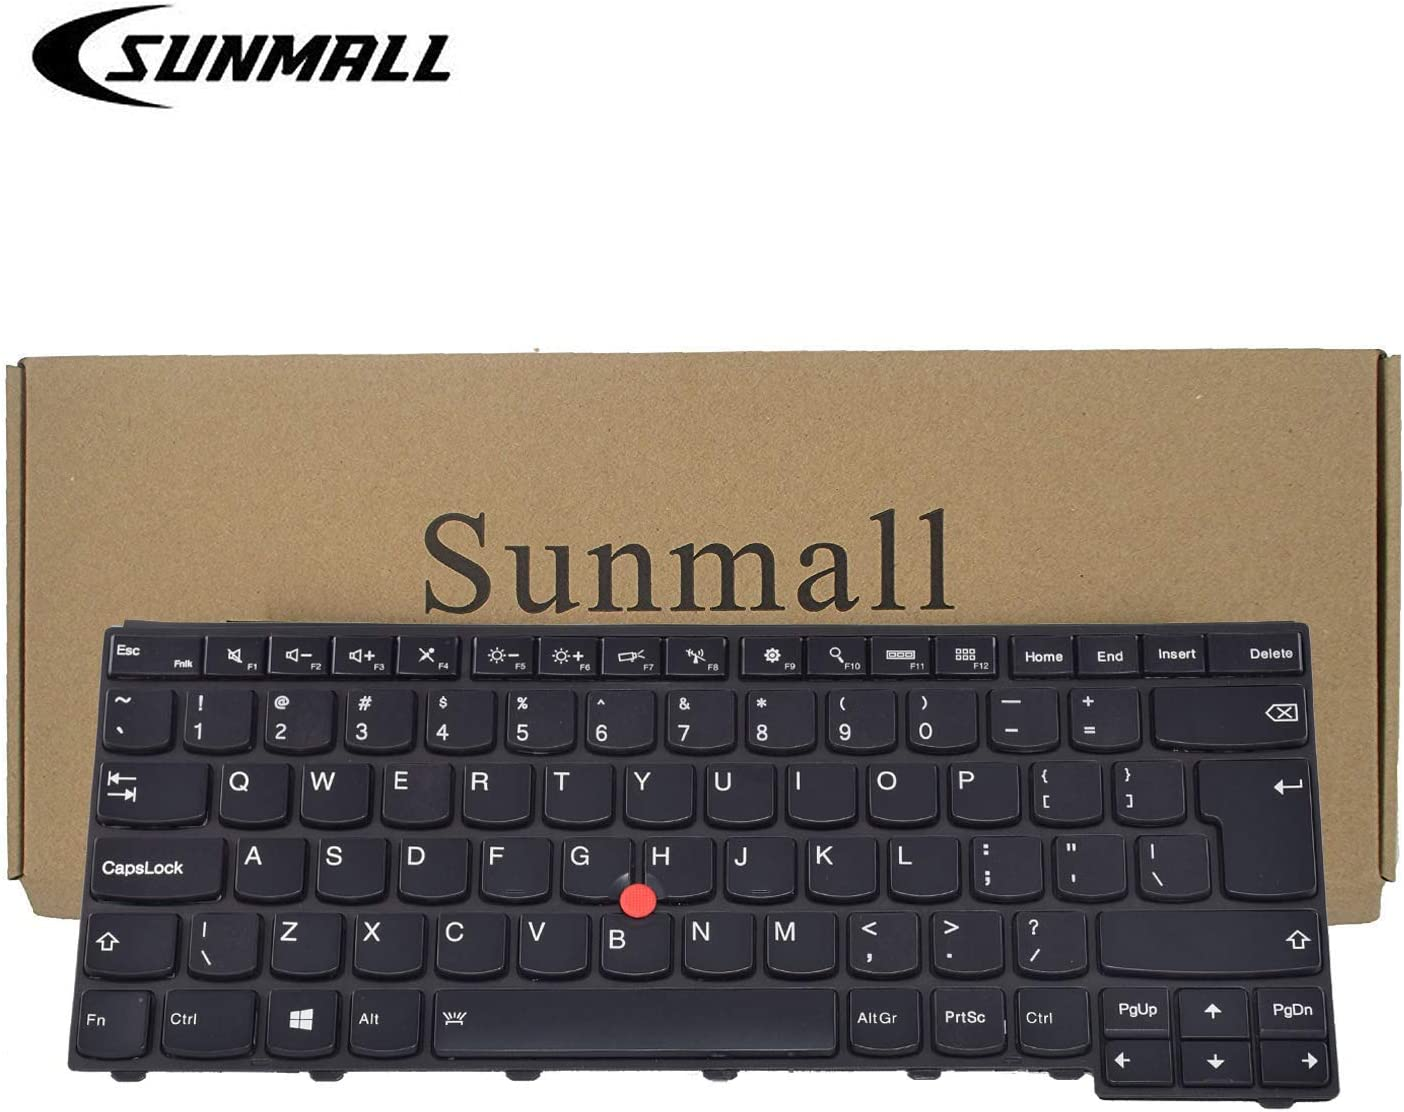 SUNMALL Backlit Keyboard Replacement with Big Enter Key for Lenovo ThinkPad T431 T431S E431 T440 T440P T440S E440 L440 T450 T450S T460 Series Laptop US Black Layout